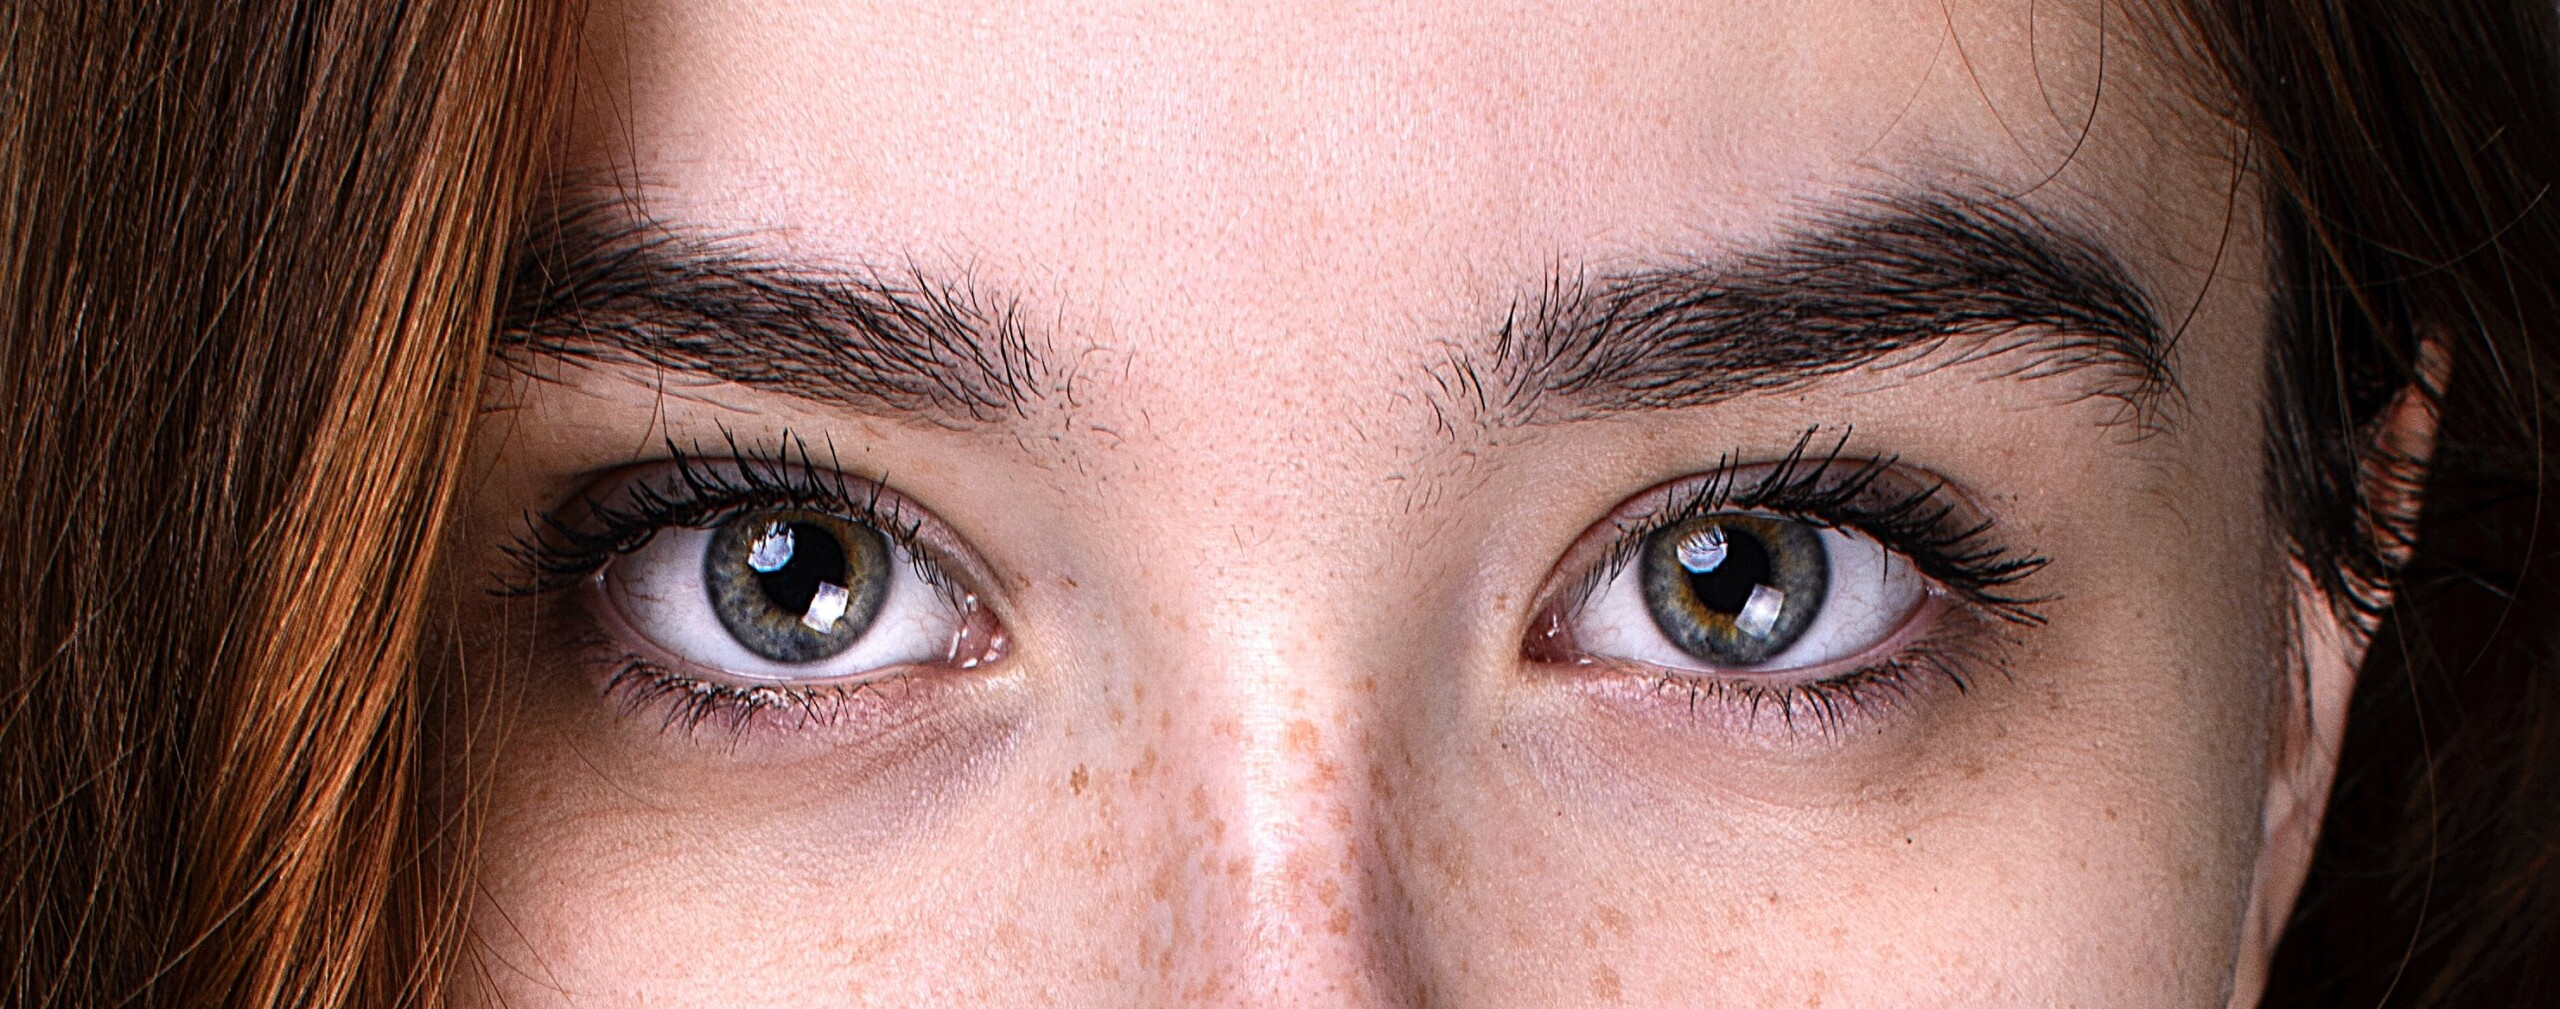 Headache Pain When Moving Both Eyes: Can Be Emergency Condition